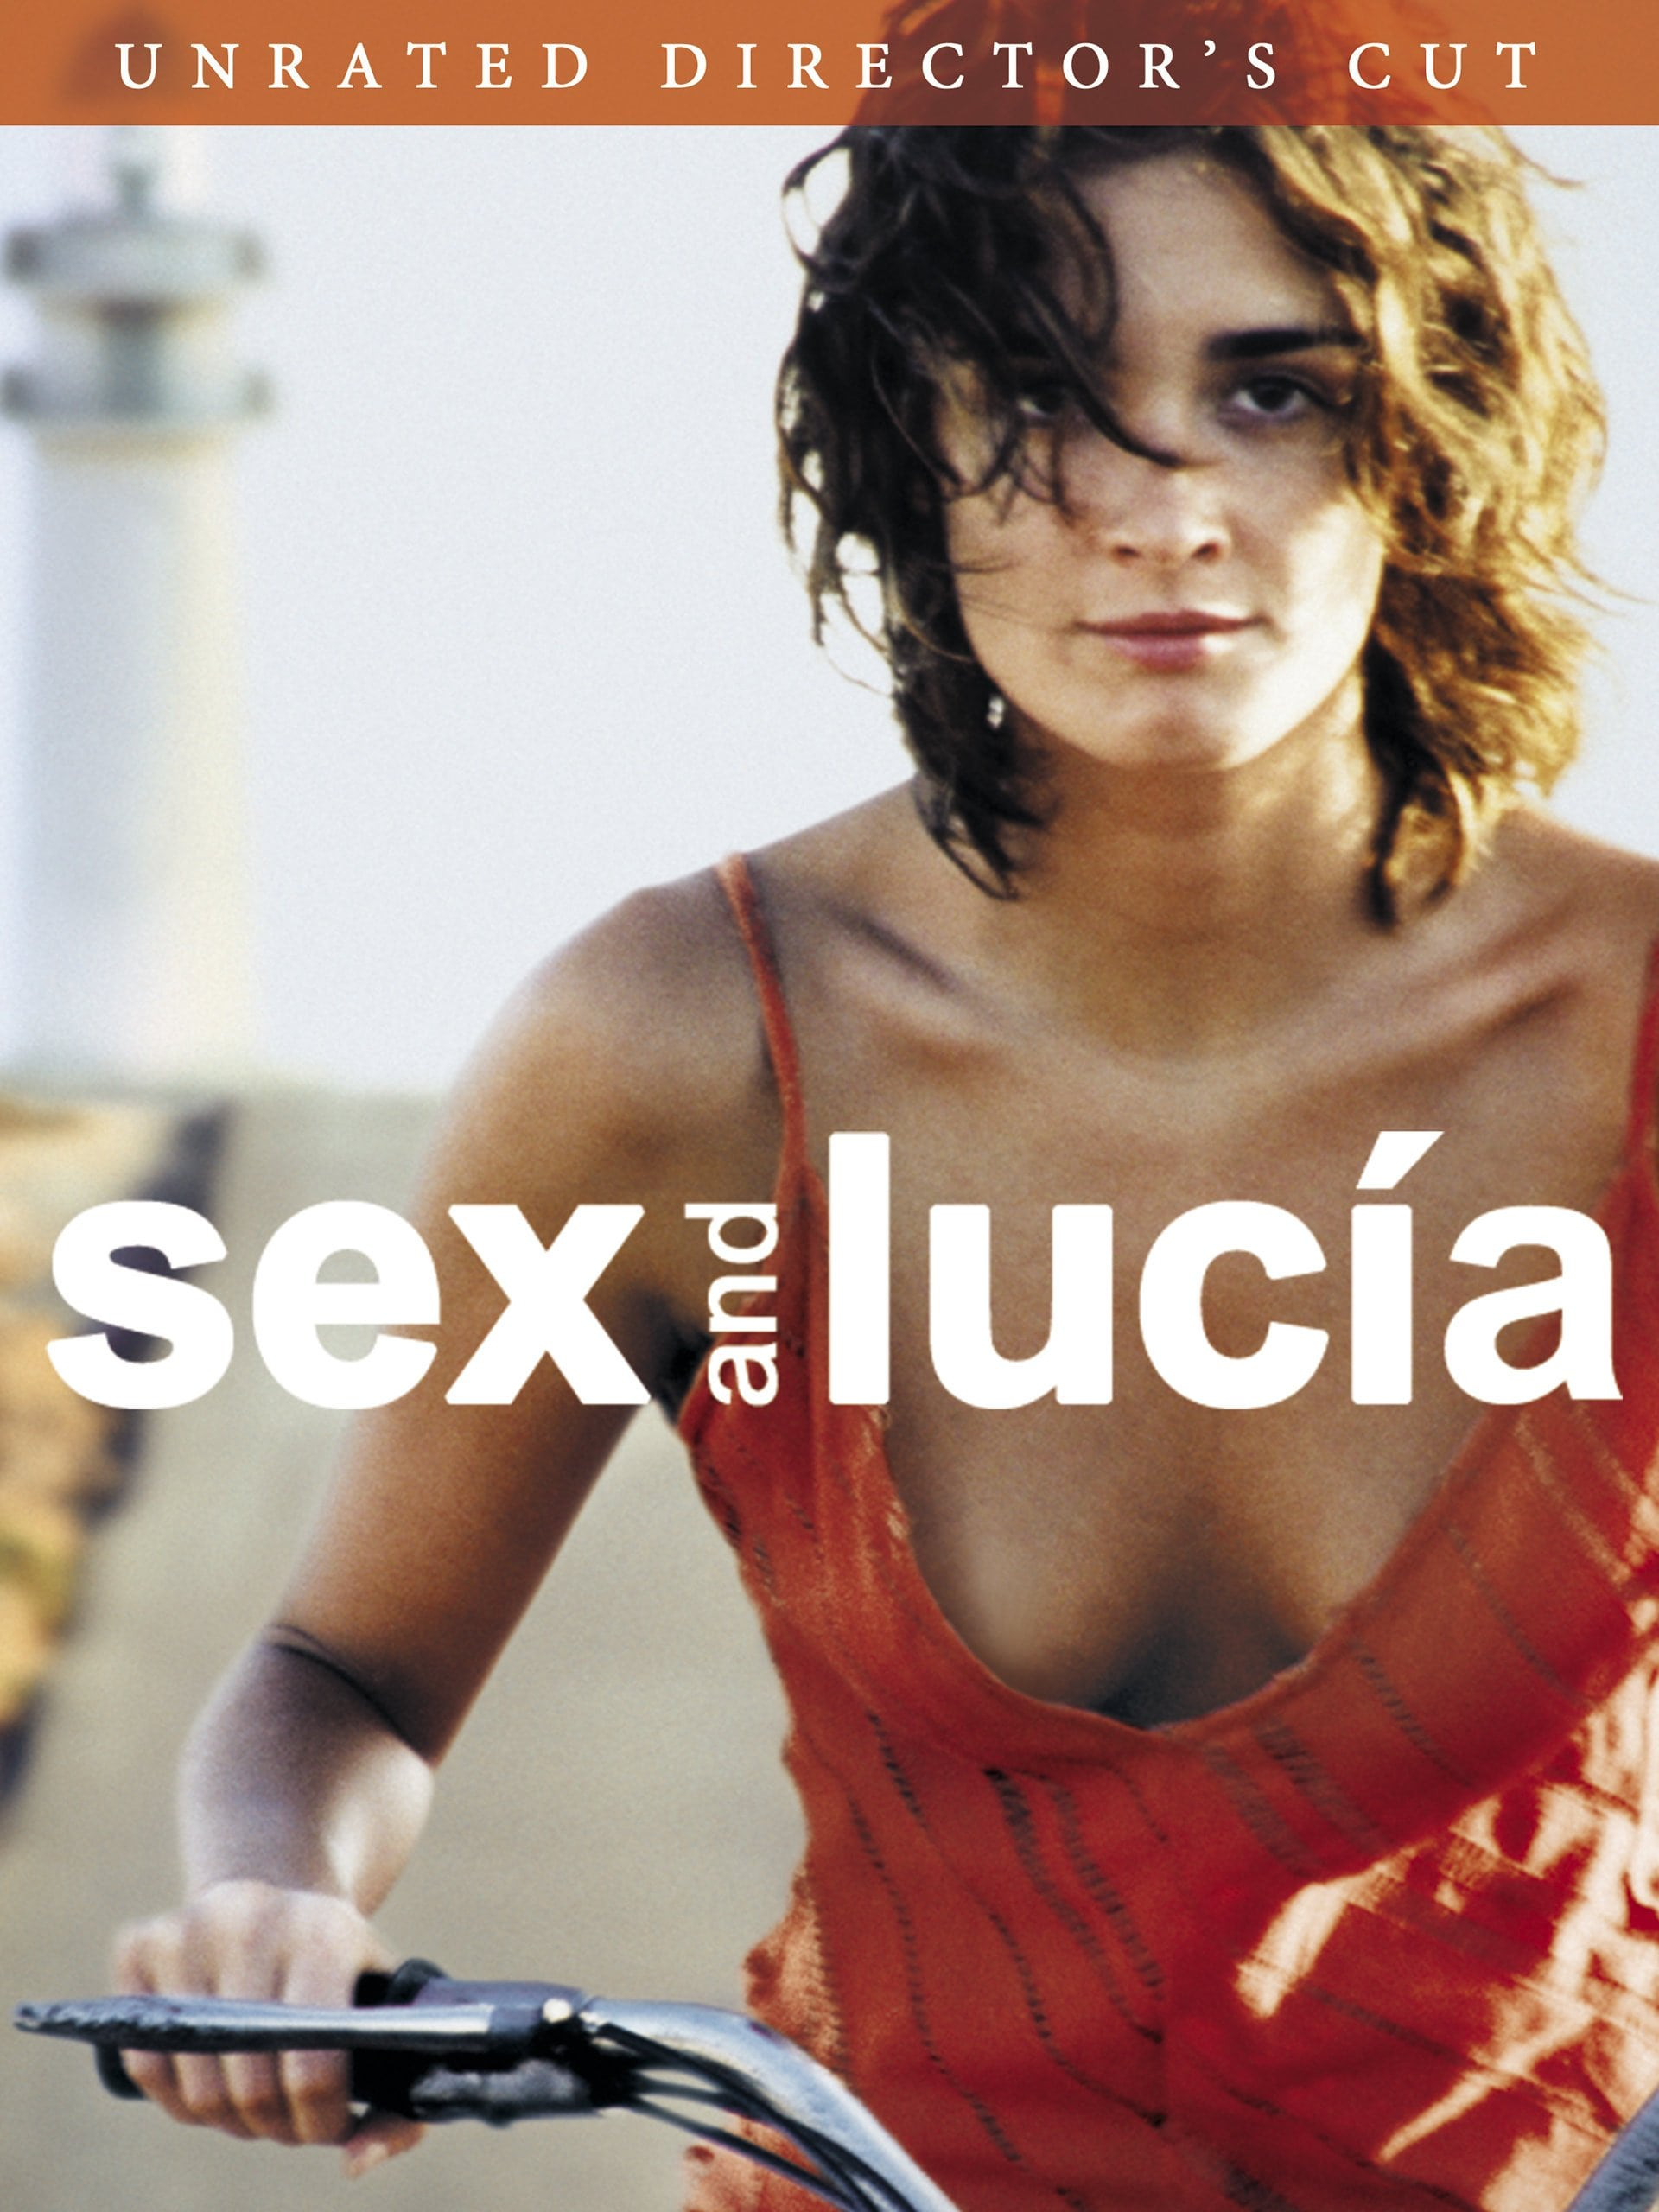 9. Sex and Lucia (2001)